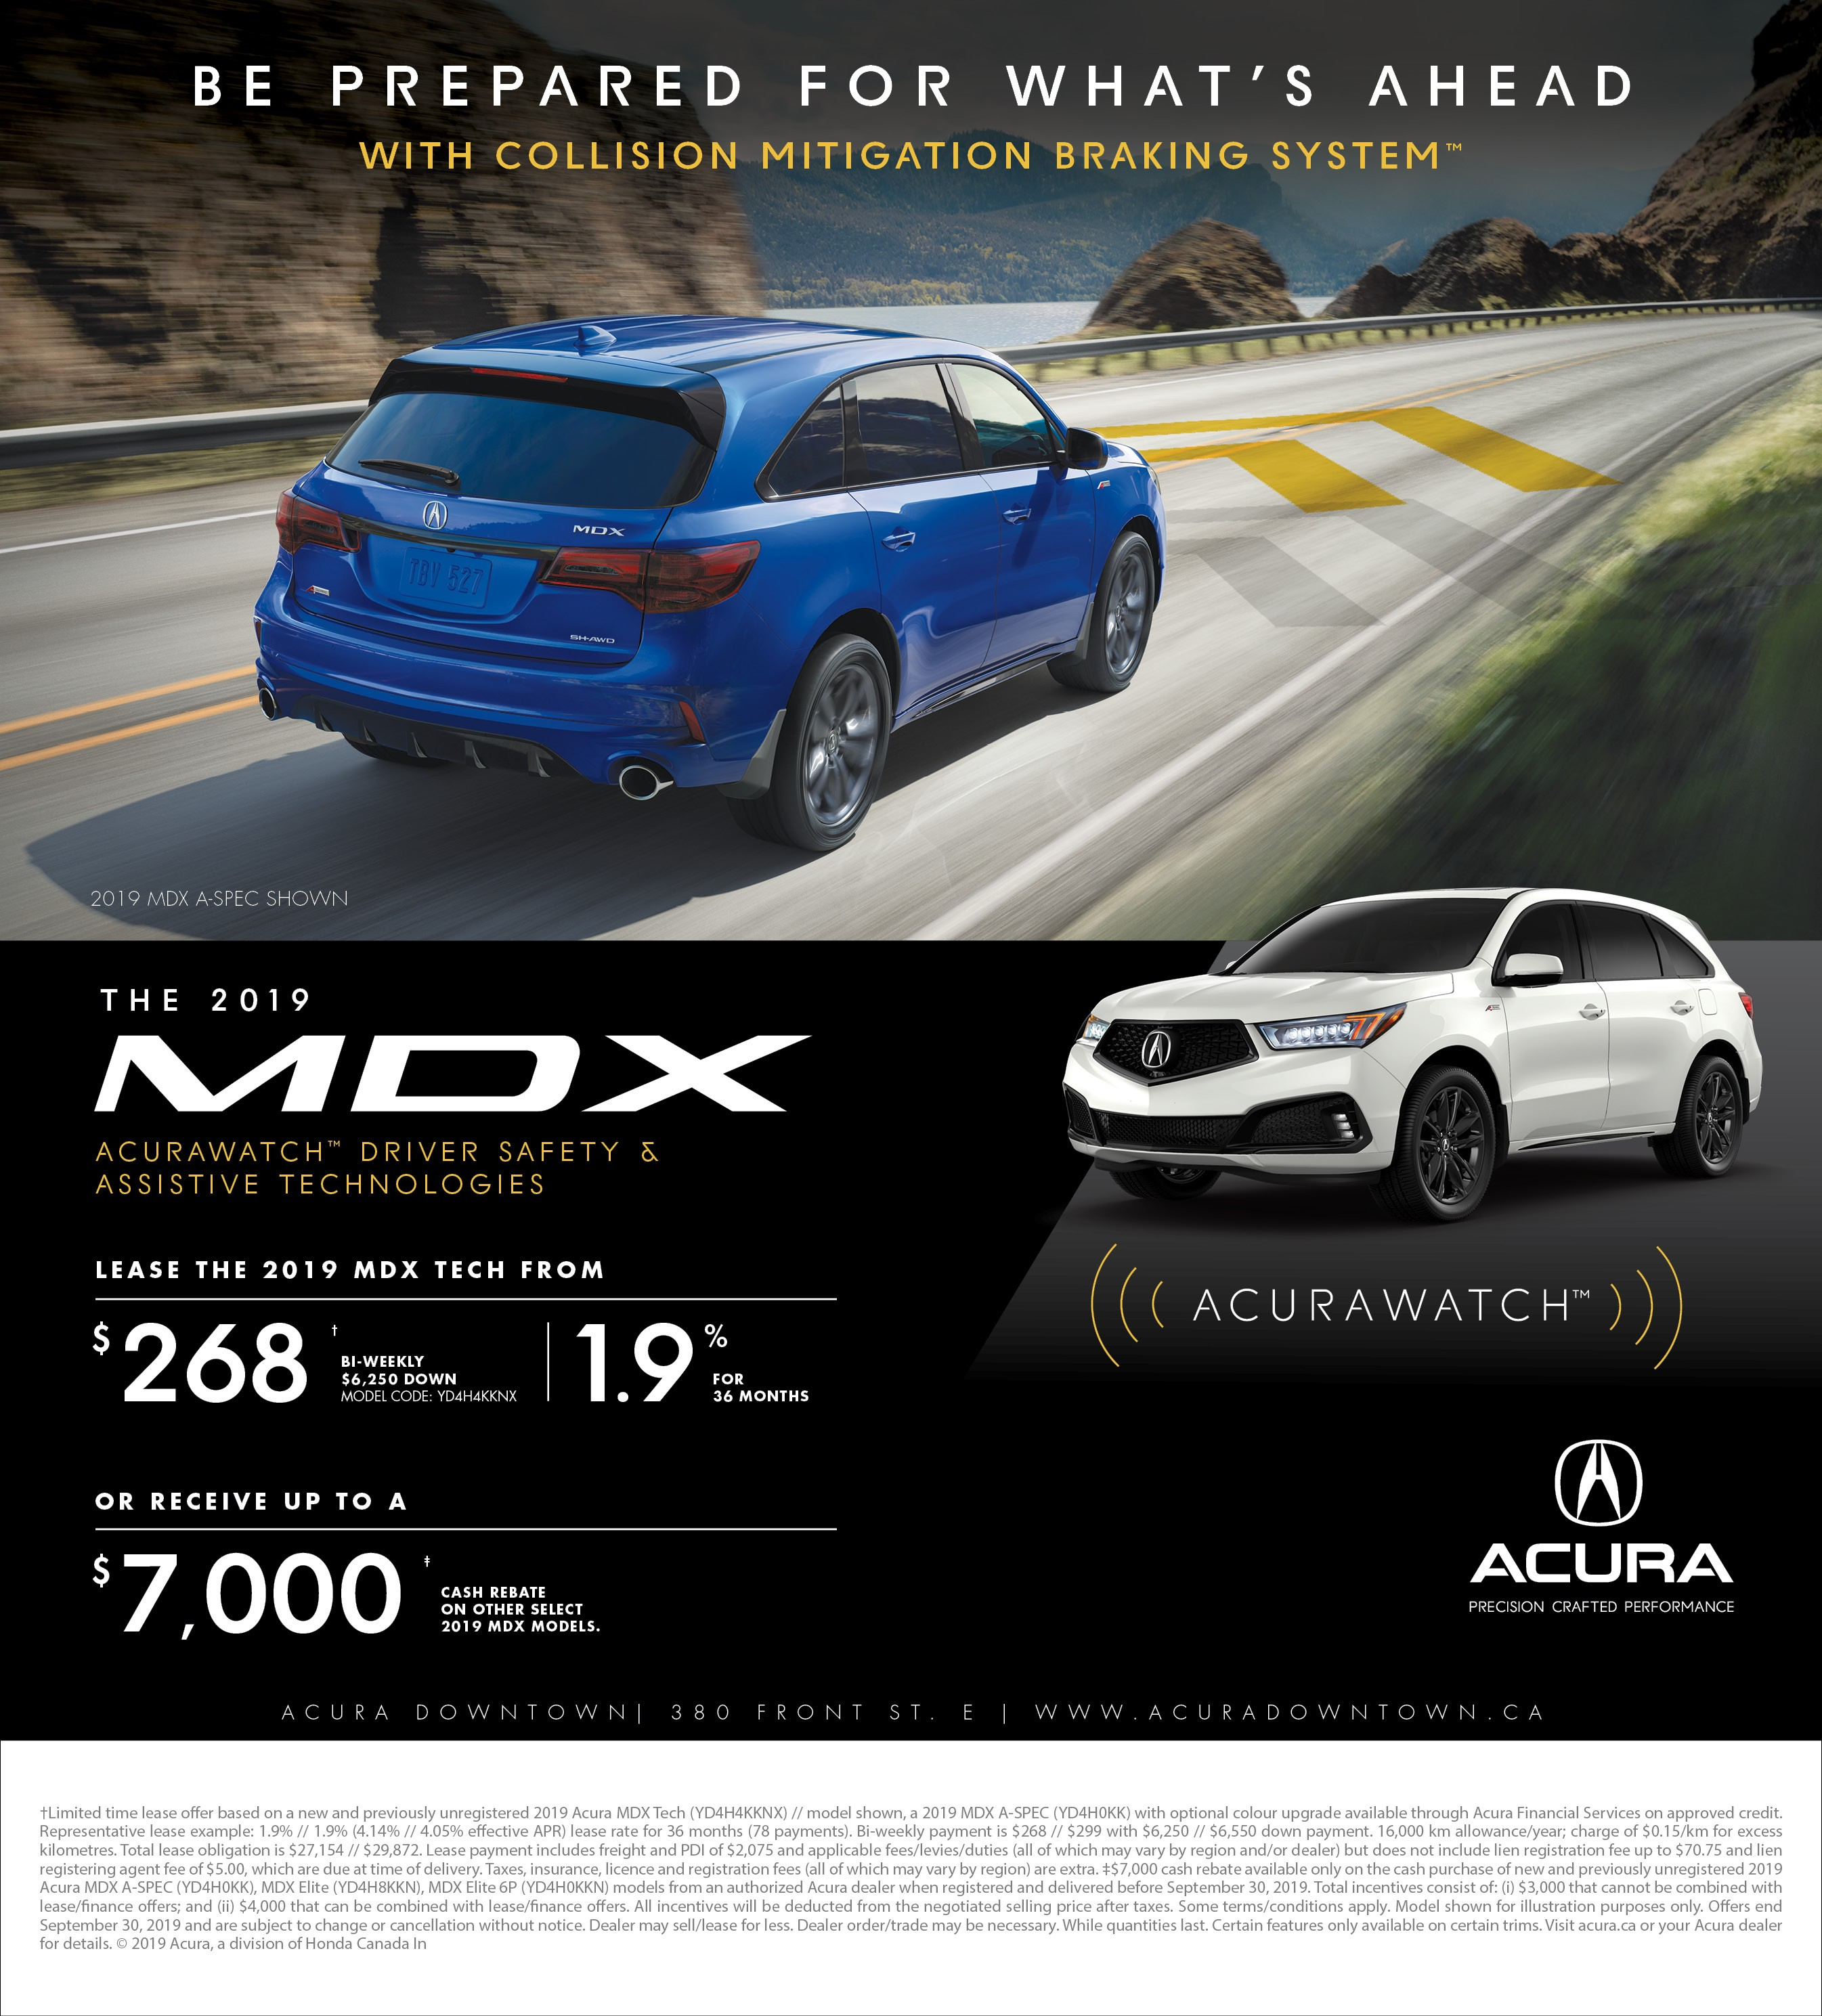 2019 Acura Mdx: September Special - Acura Downtown